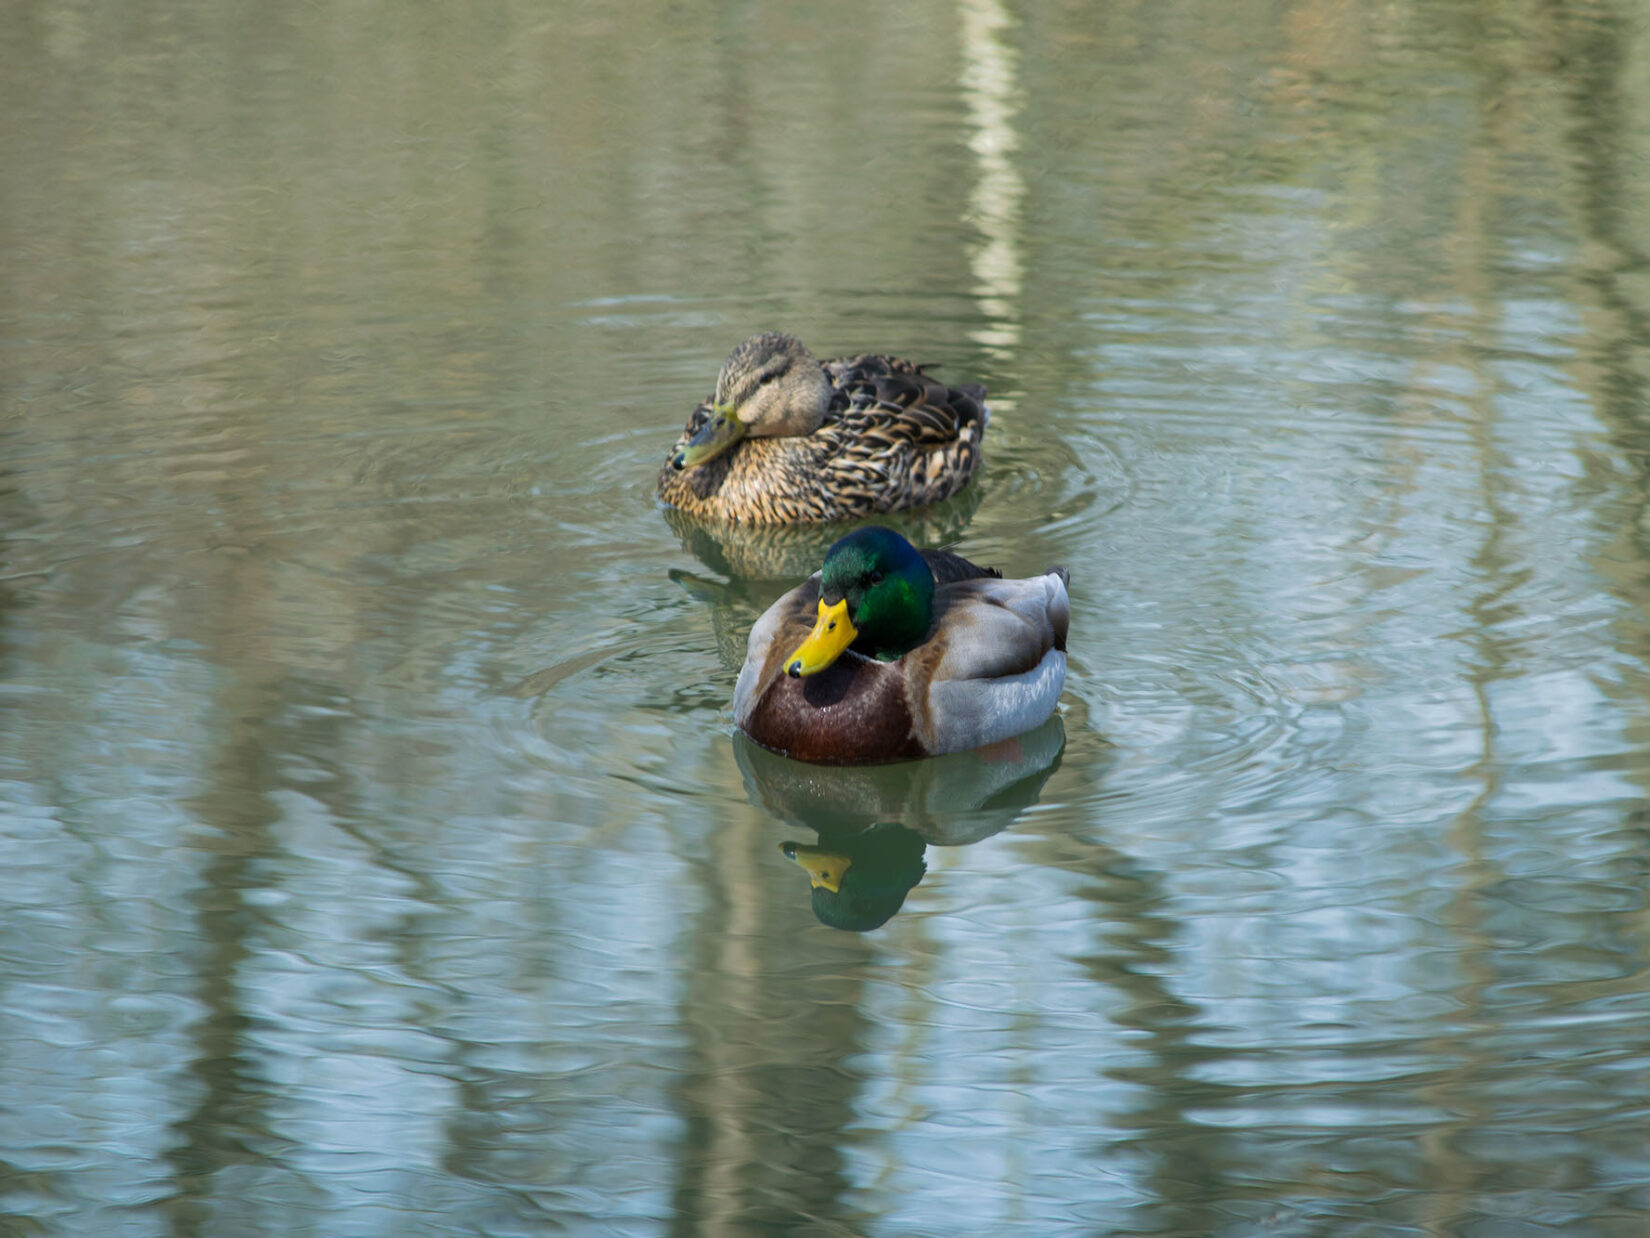 Two ducks looking serene on the still surface of the water